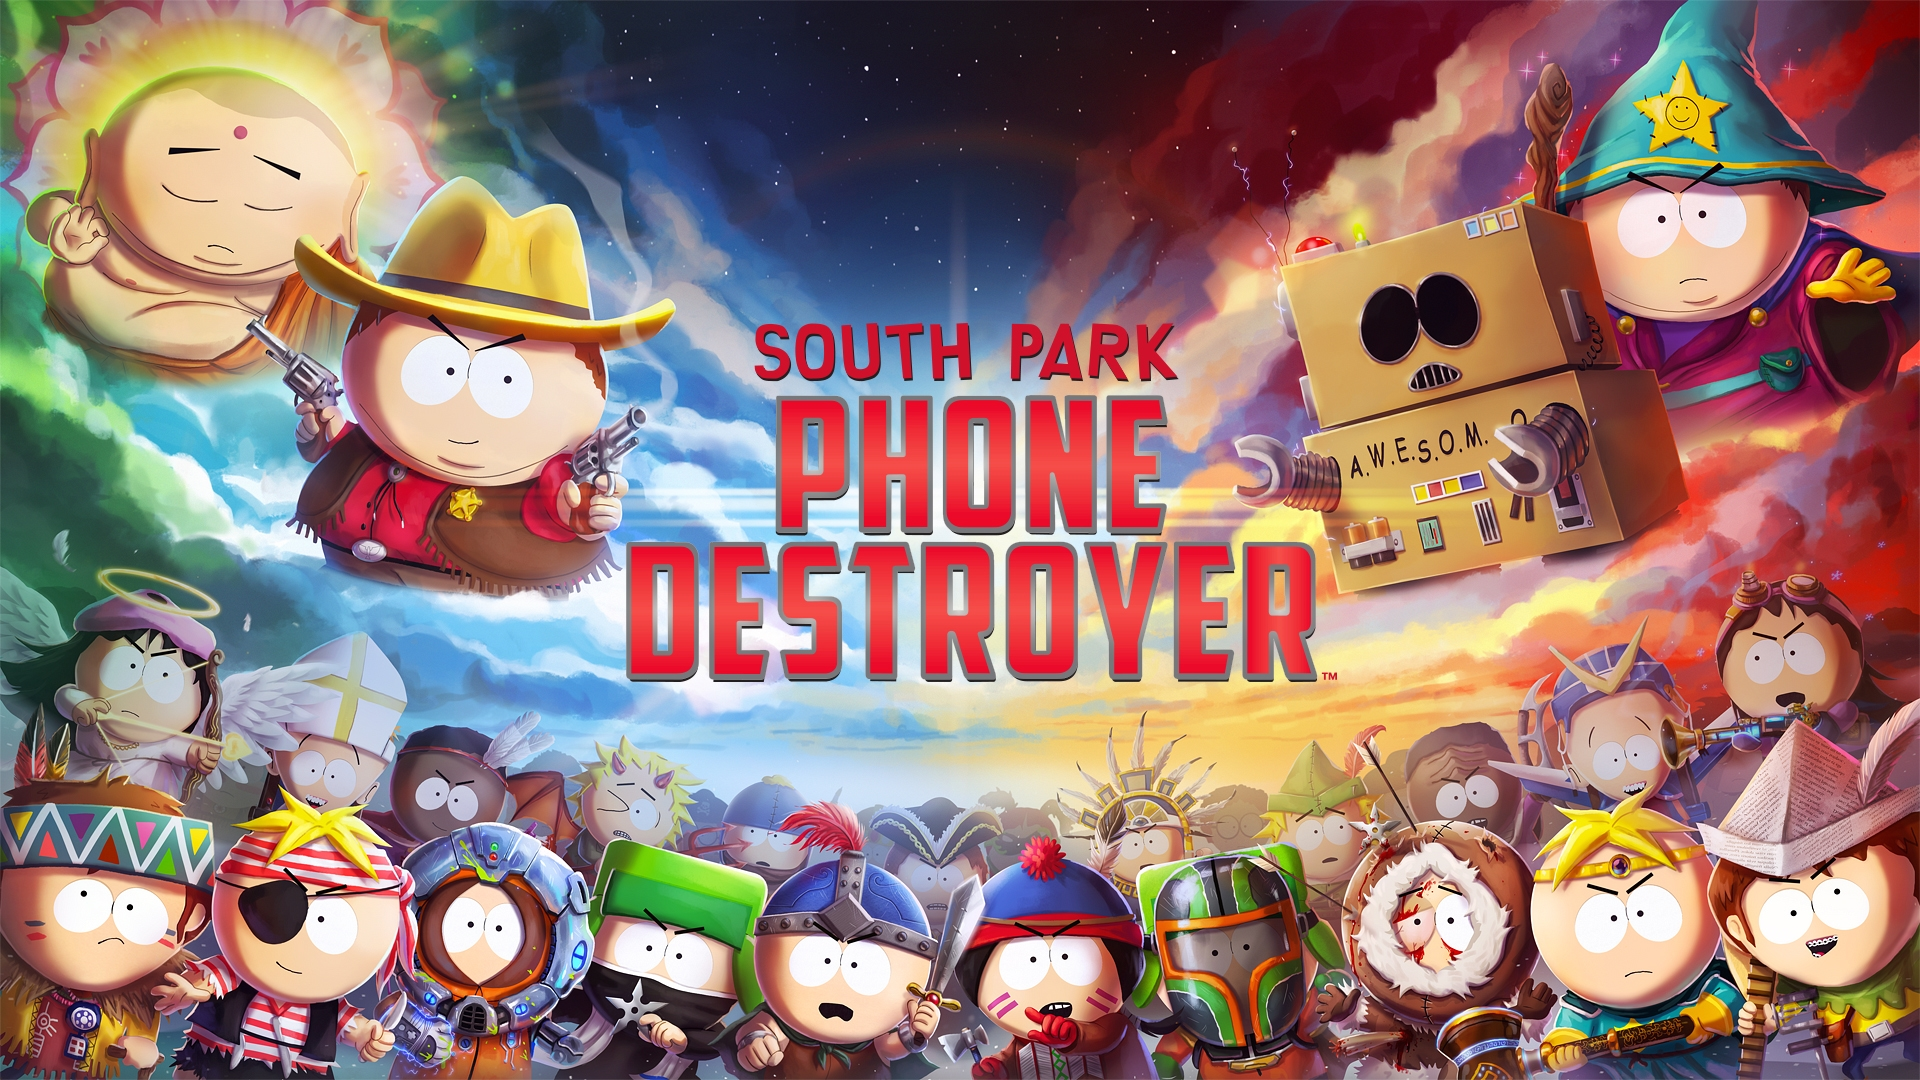 South Park: Phone Destroyer Launches November 9 on Mobile Devices Worldwide | DeviceDaily.com